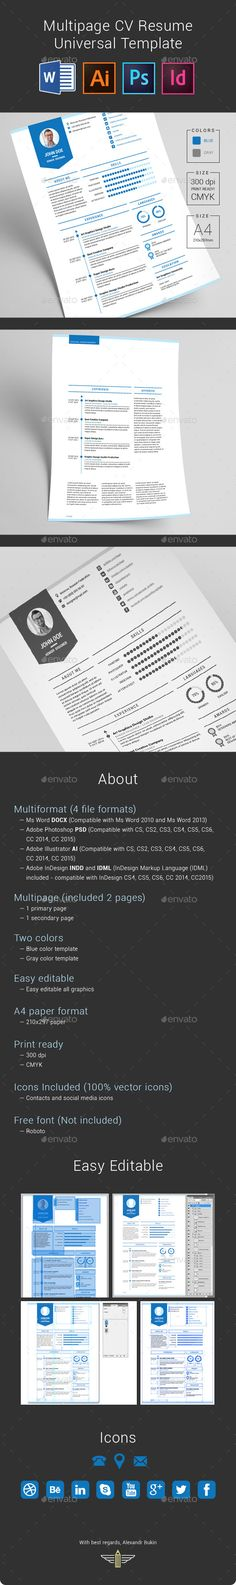 Multipage CV Resume Universal Template - Resumes Stationery